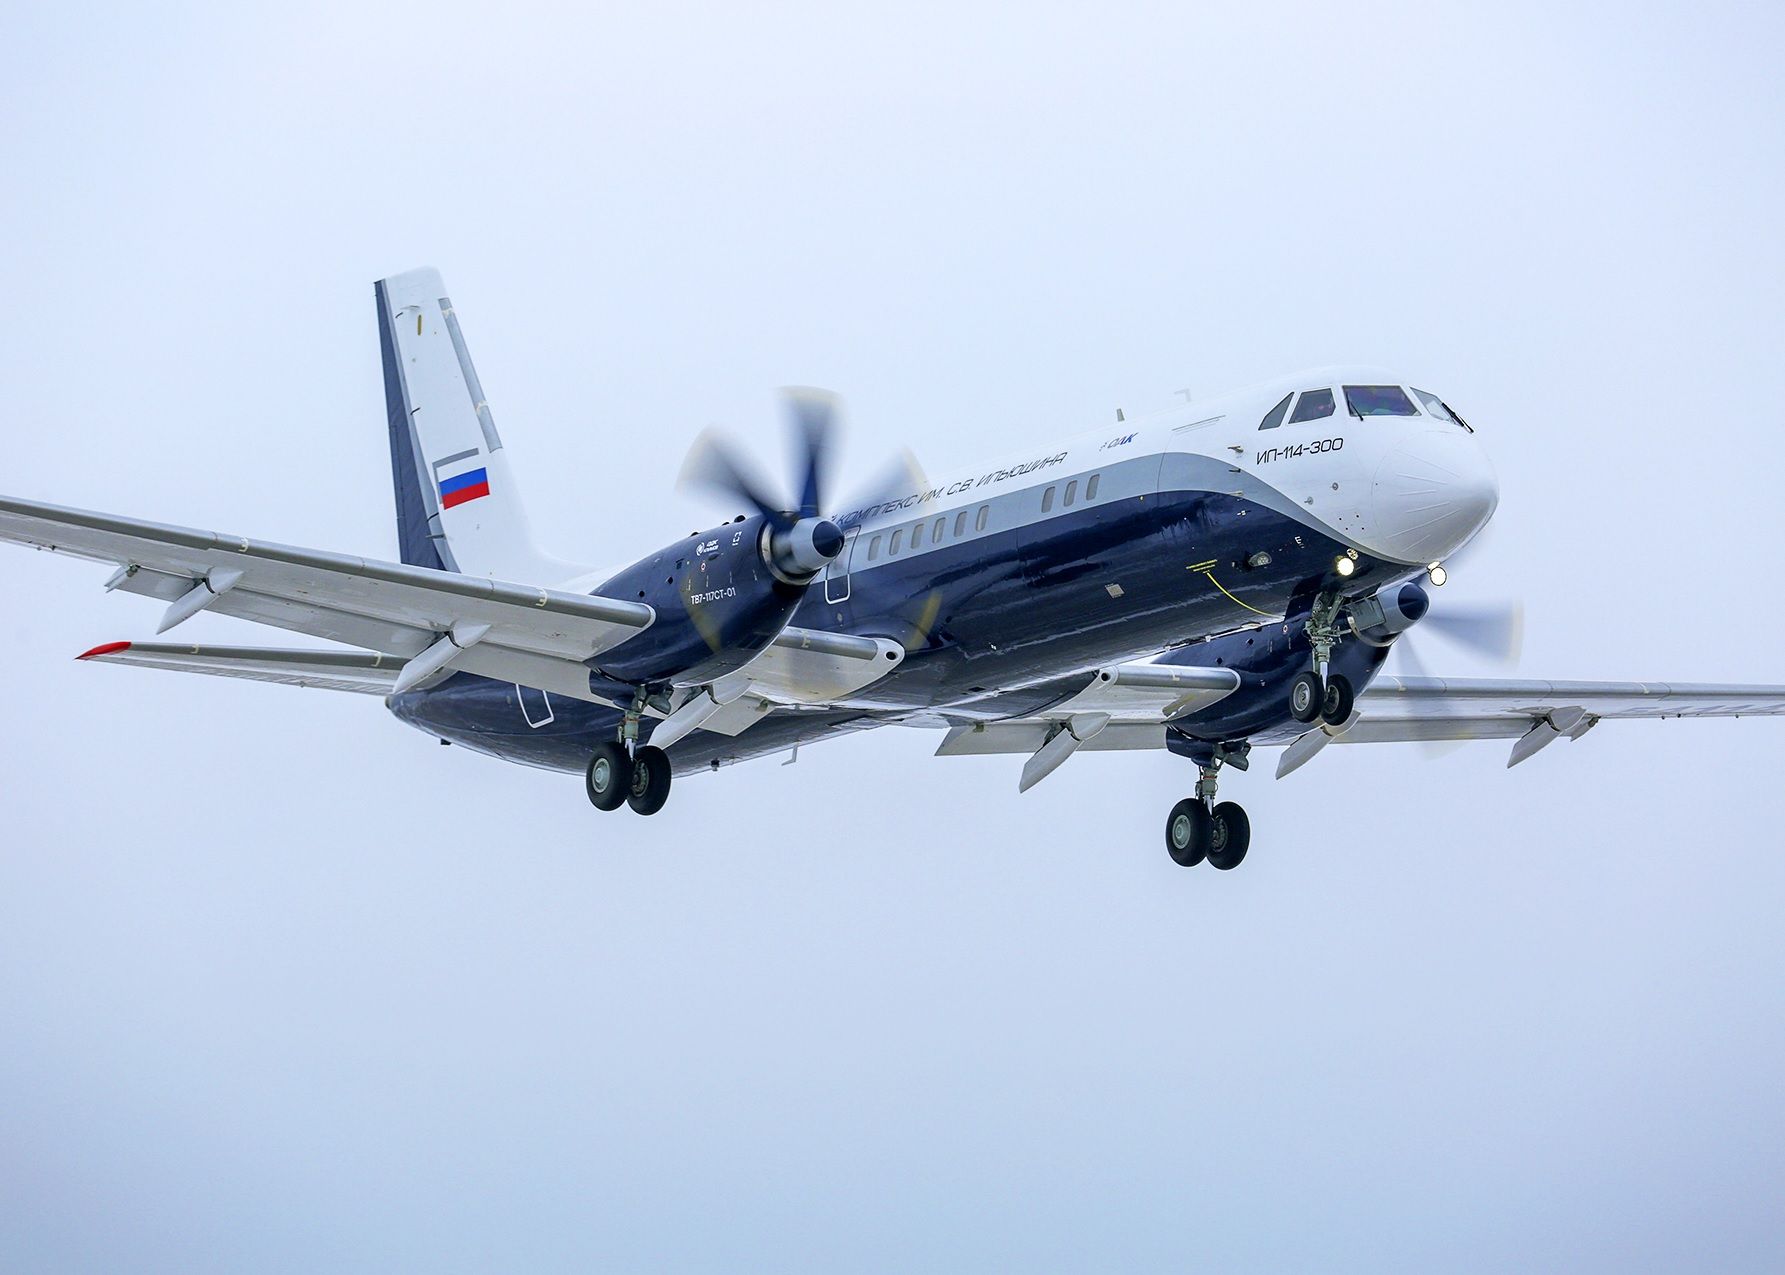 Il-114-300's first lift-off marks second Russian maiden flight in two days